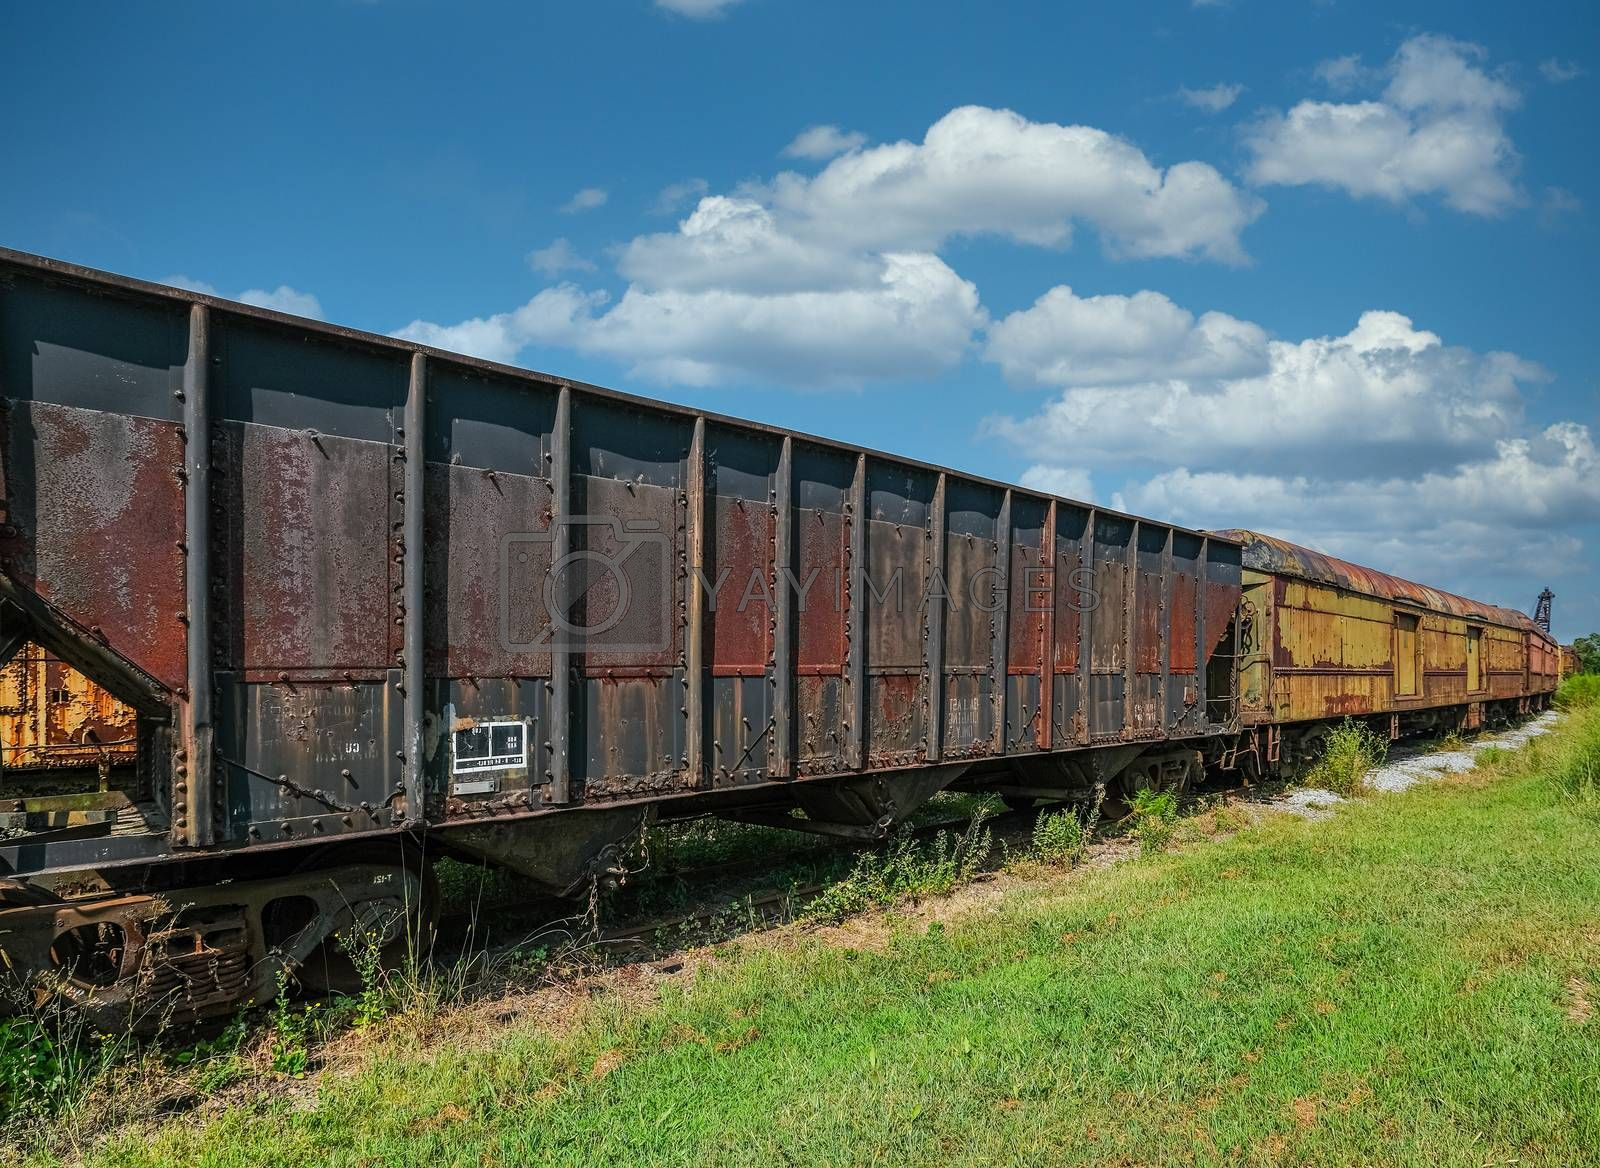 Rusty Train Cars on Track in a Grassy Field